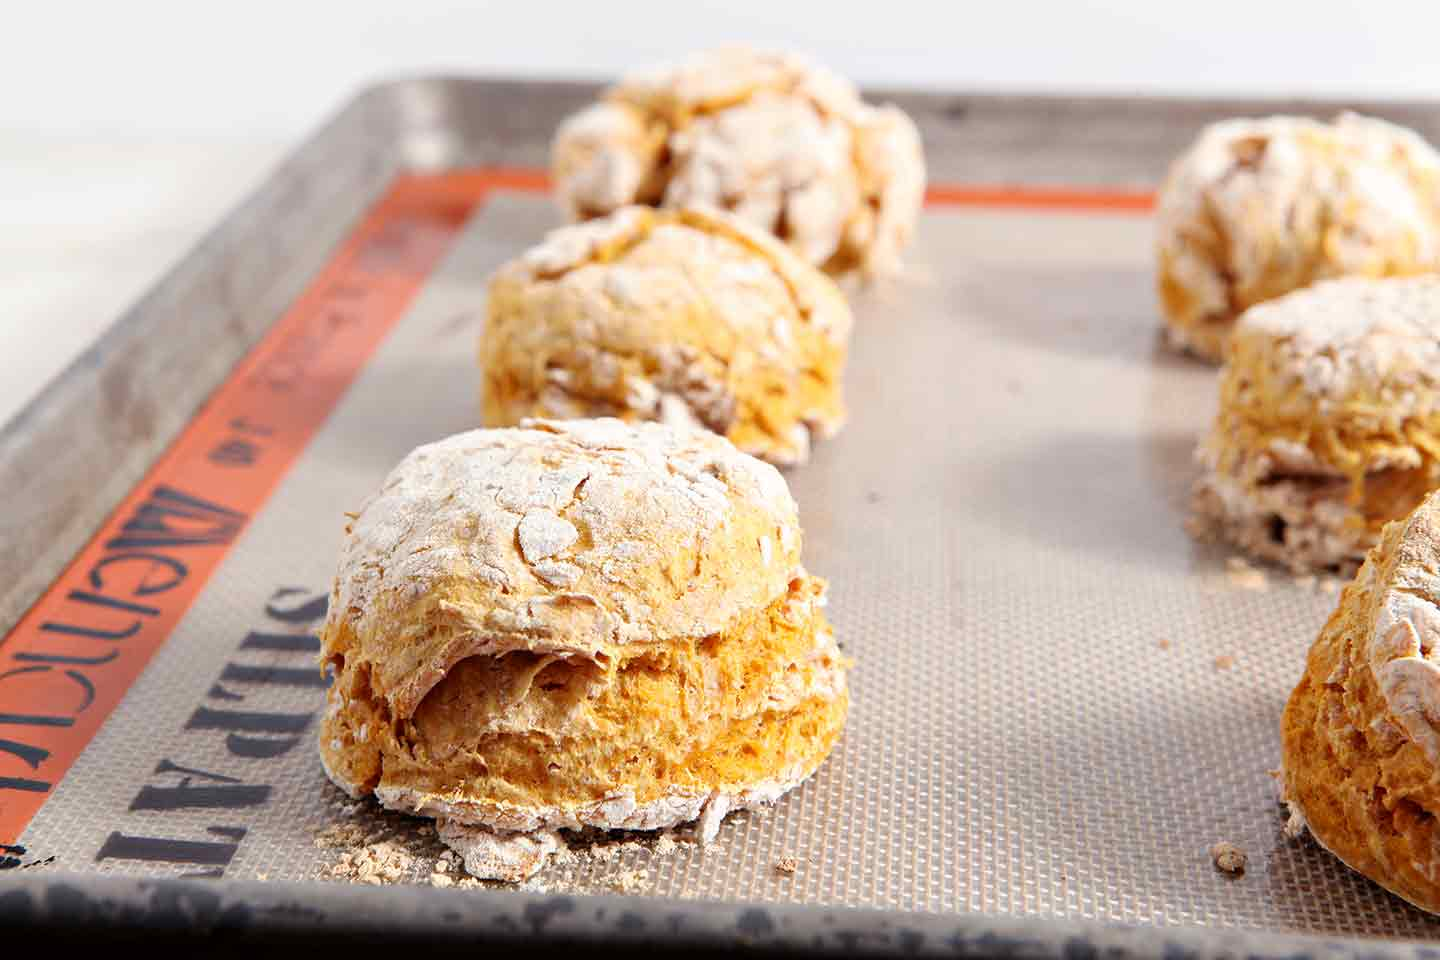 Celebrate the arrival of fall with these fluffy Pumpkin Biscuits with Maple Butter. Vegan biscuit dough is made with fresh or canned pumpkin puree, all-purpose flour, baking powder, unsweetened non-dairy milk, ground cinnamon and sea salt. Cut them into six large biscuits, then bake. Once they have risen, cooked through and cooled slightly, slice them in half and slather with homemade maple butter for the ultimate autumn-flavored decadence.